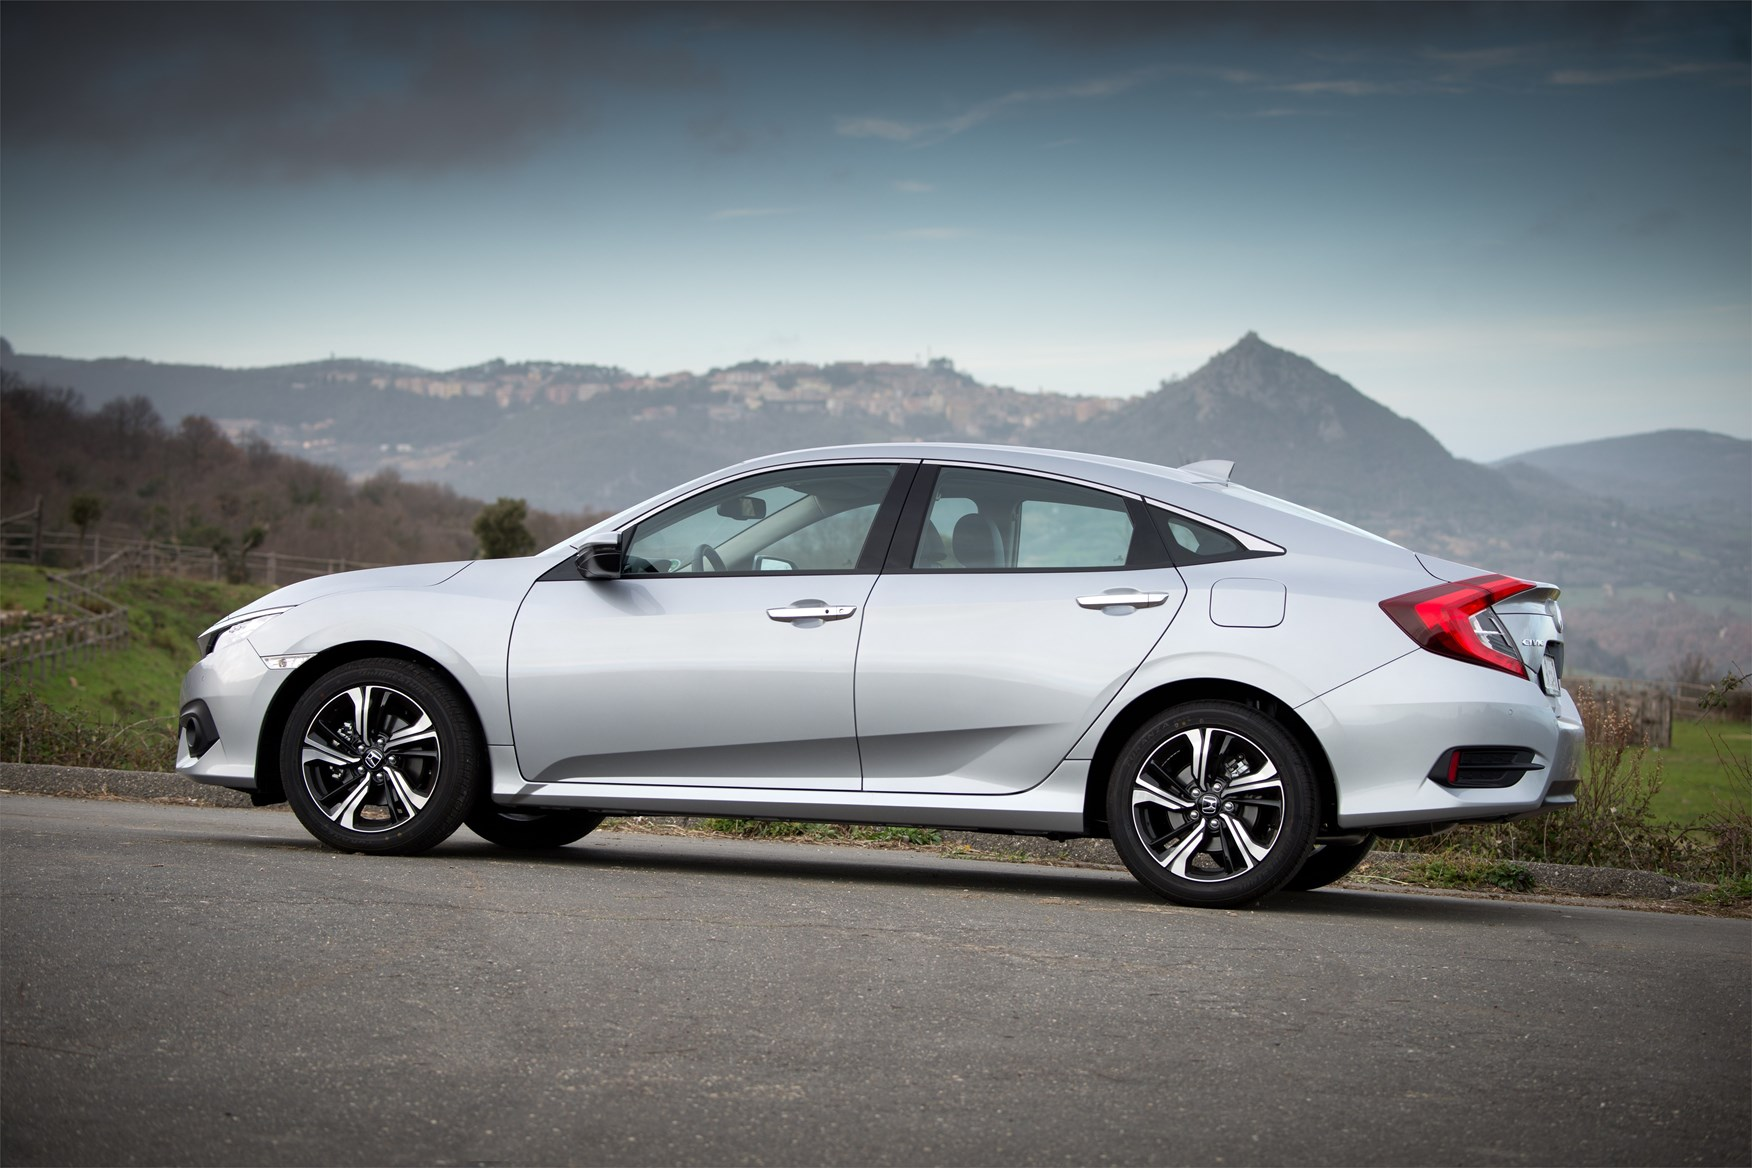 Honda Civic Saloon review: summary | Parkers